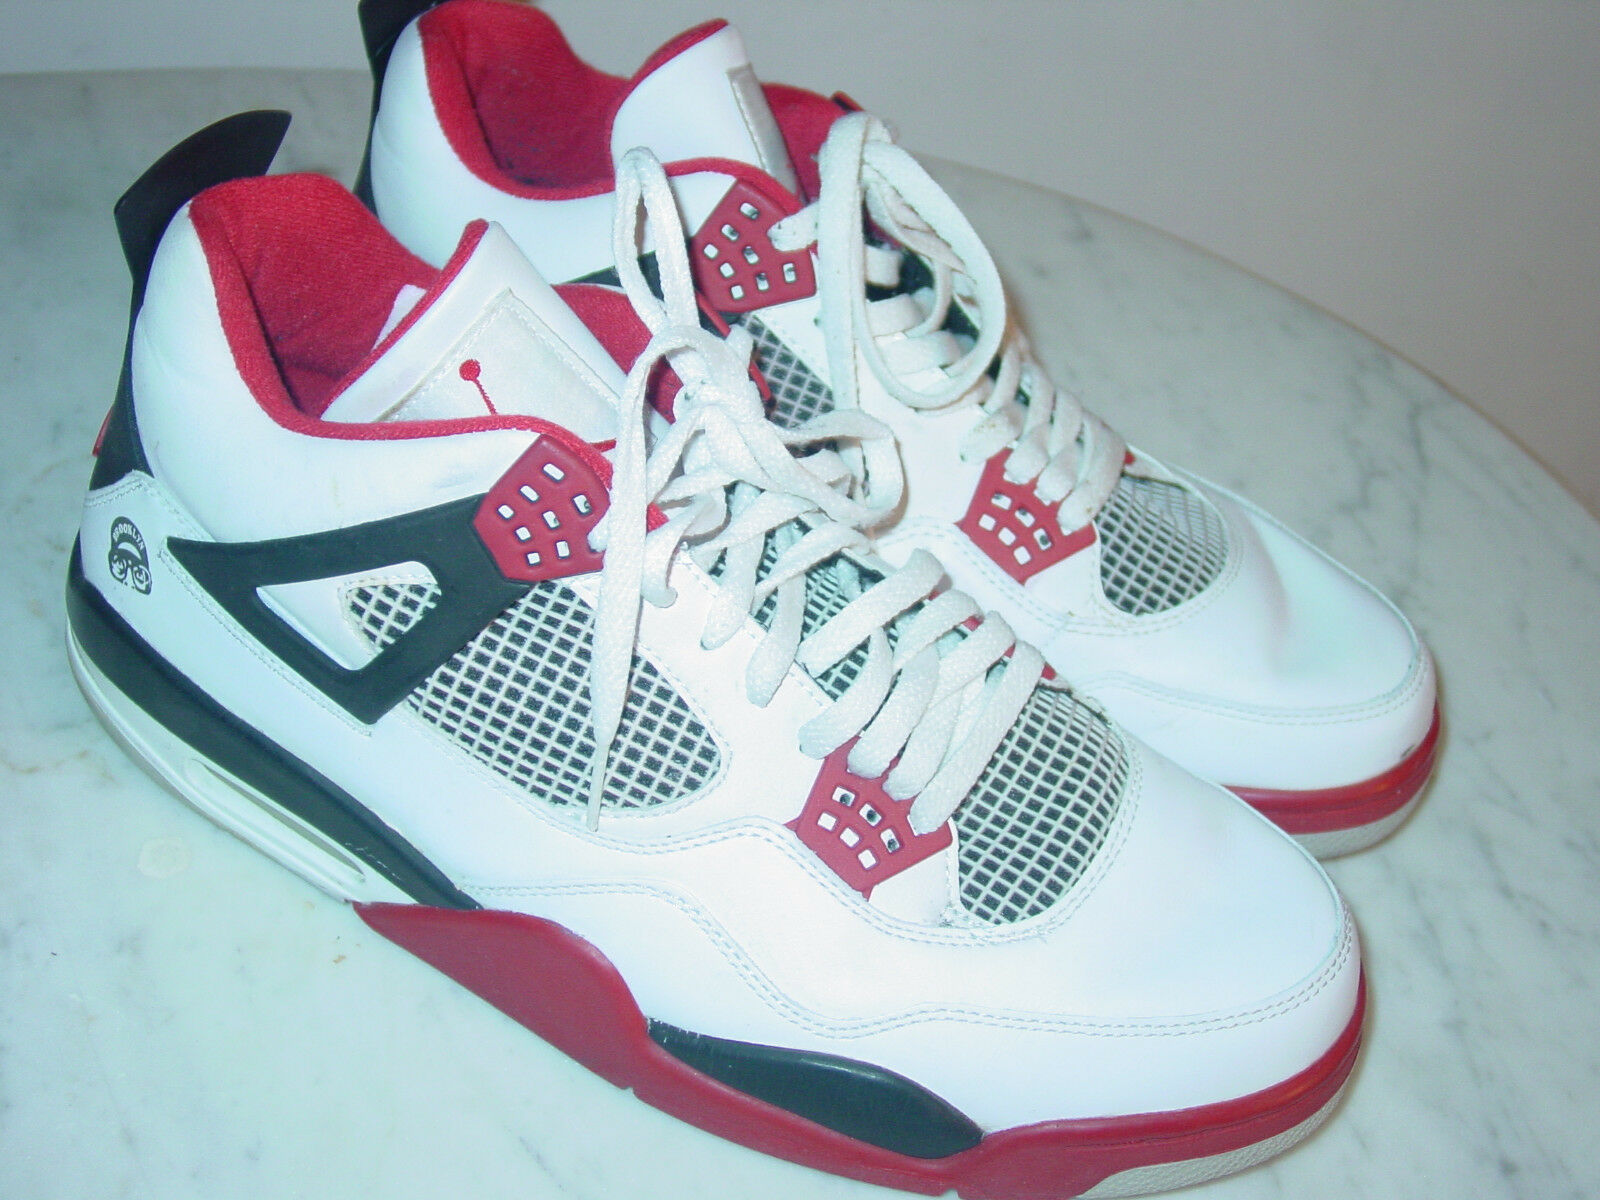 best website 7e0fc 1555f 2006 Nike Air Jordan Retro 4 Mars Mars Mars Blackmon White shoes Size 13  Sold As